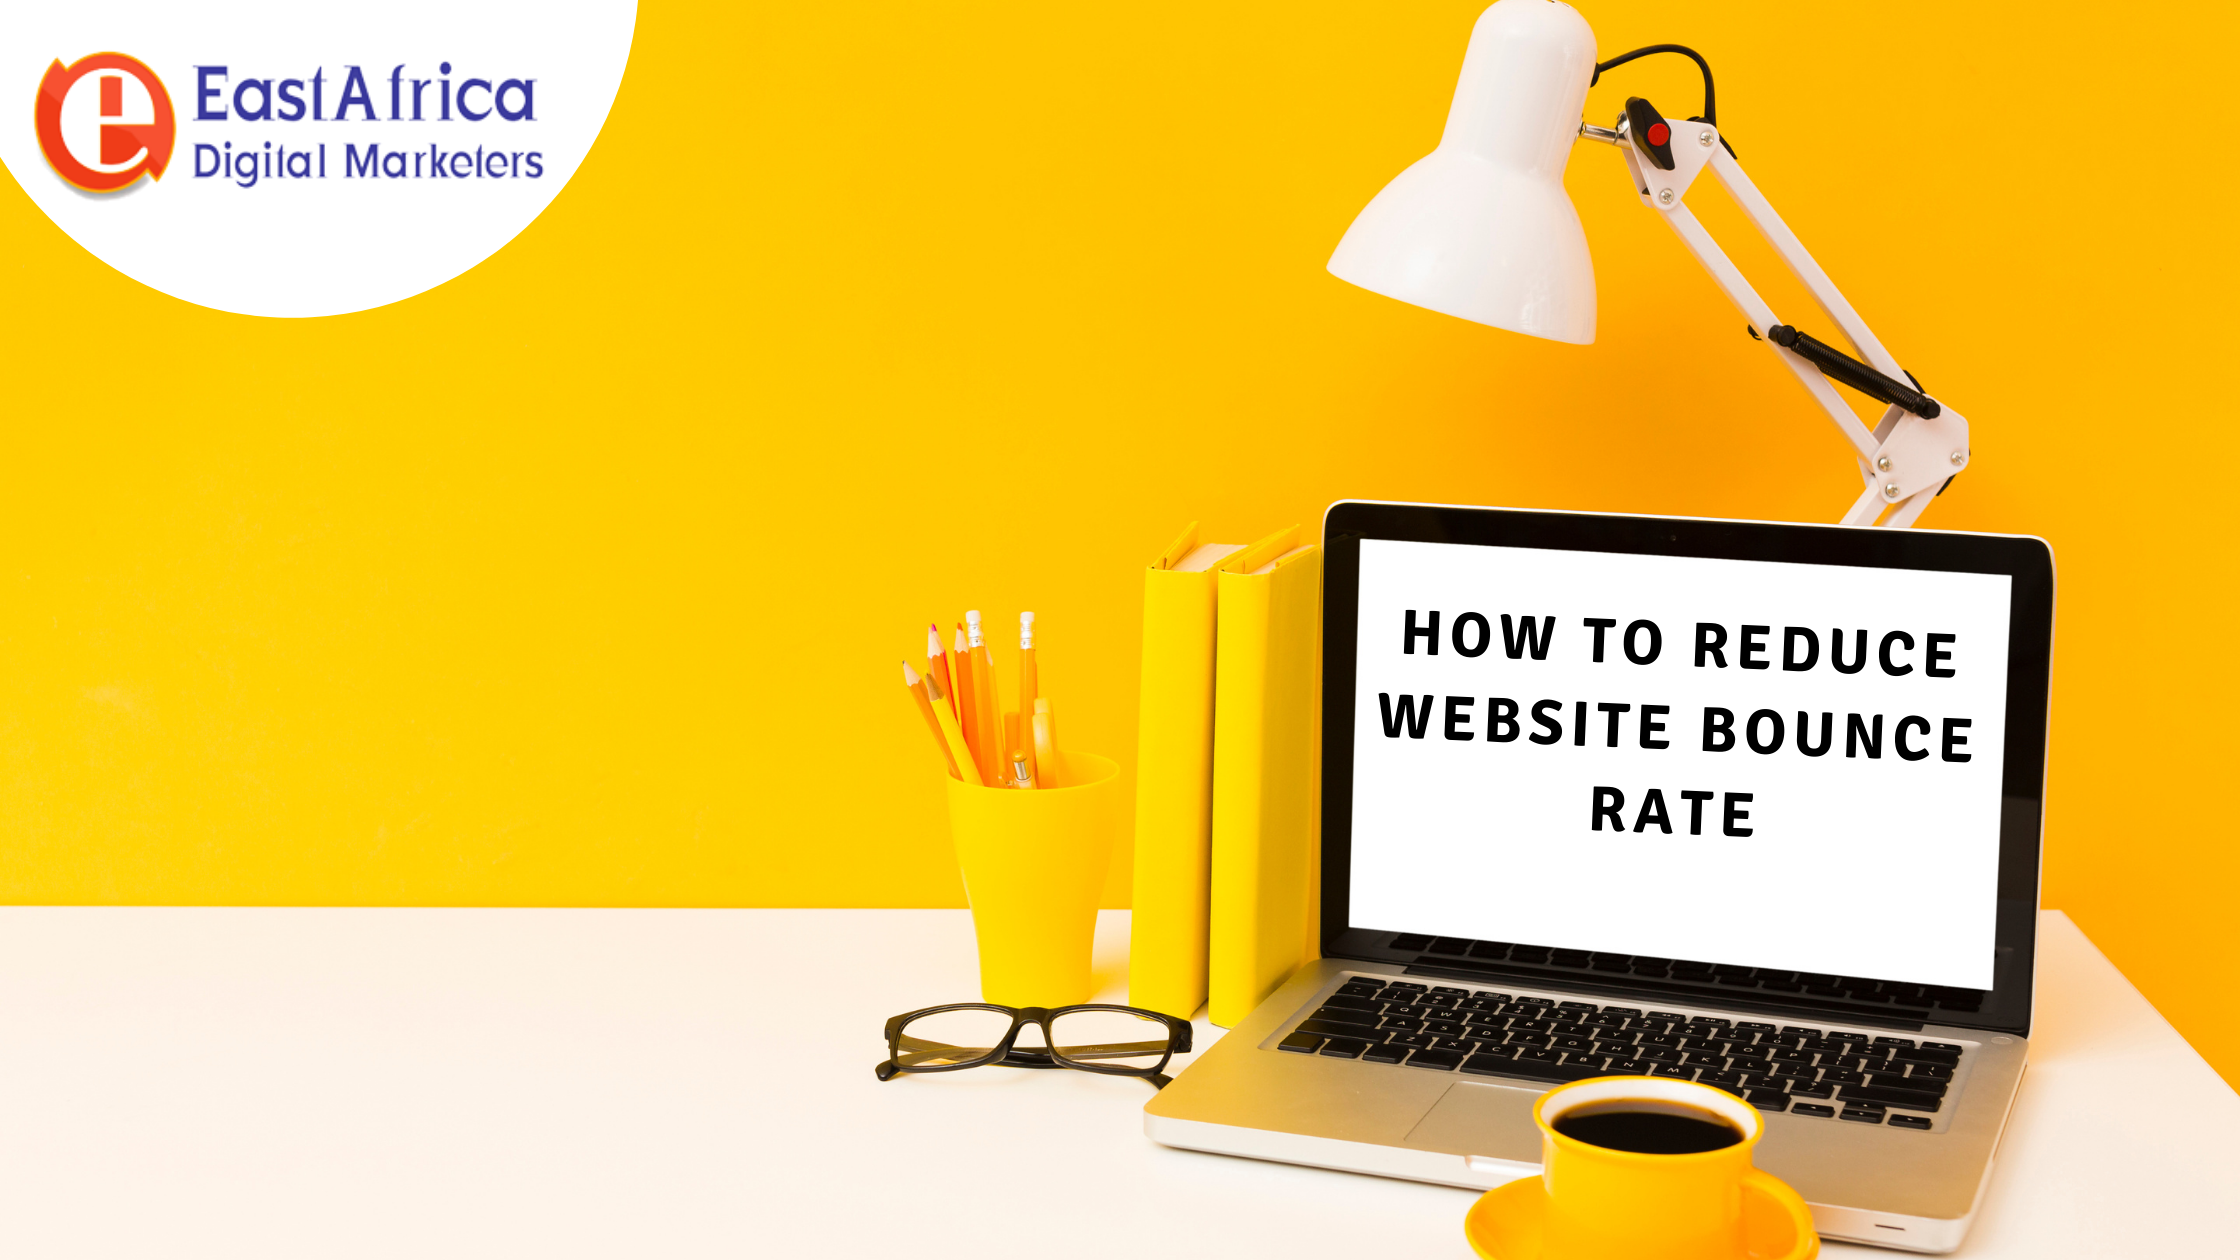 How to reduce website bounce rate